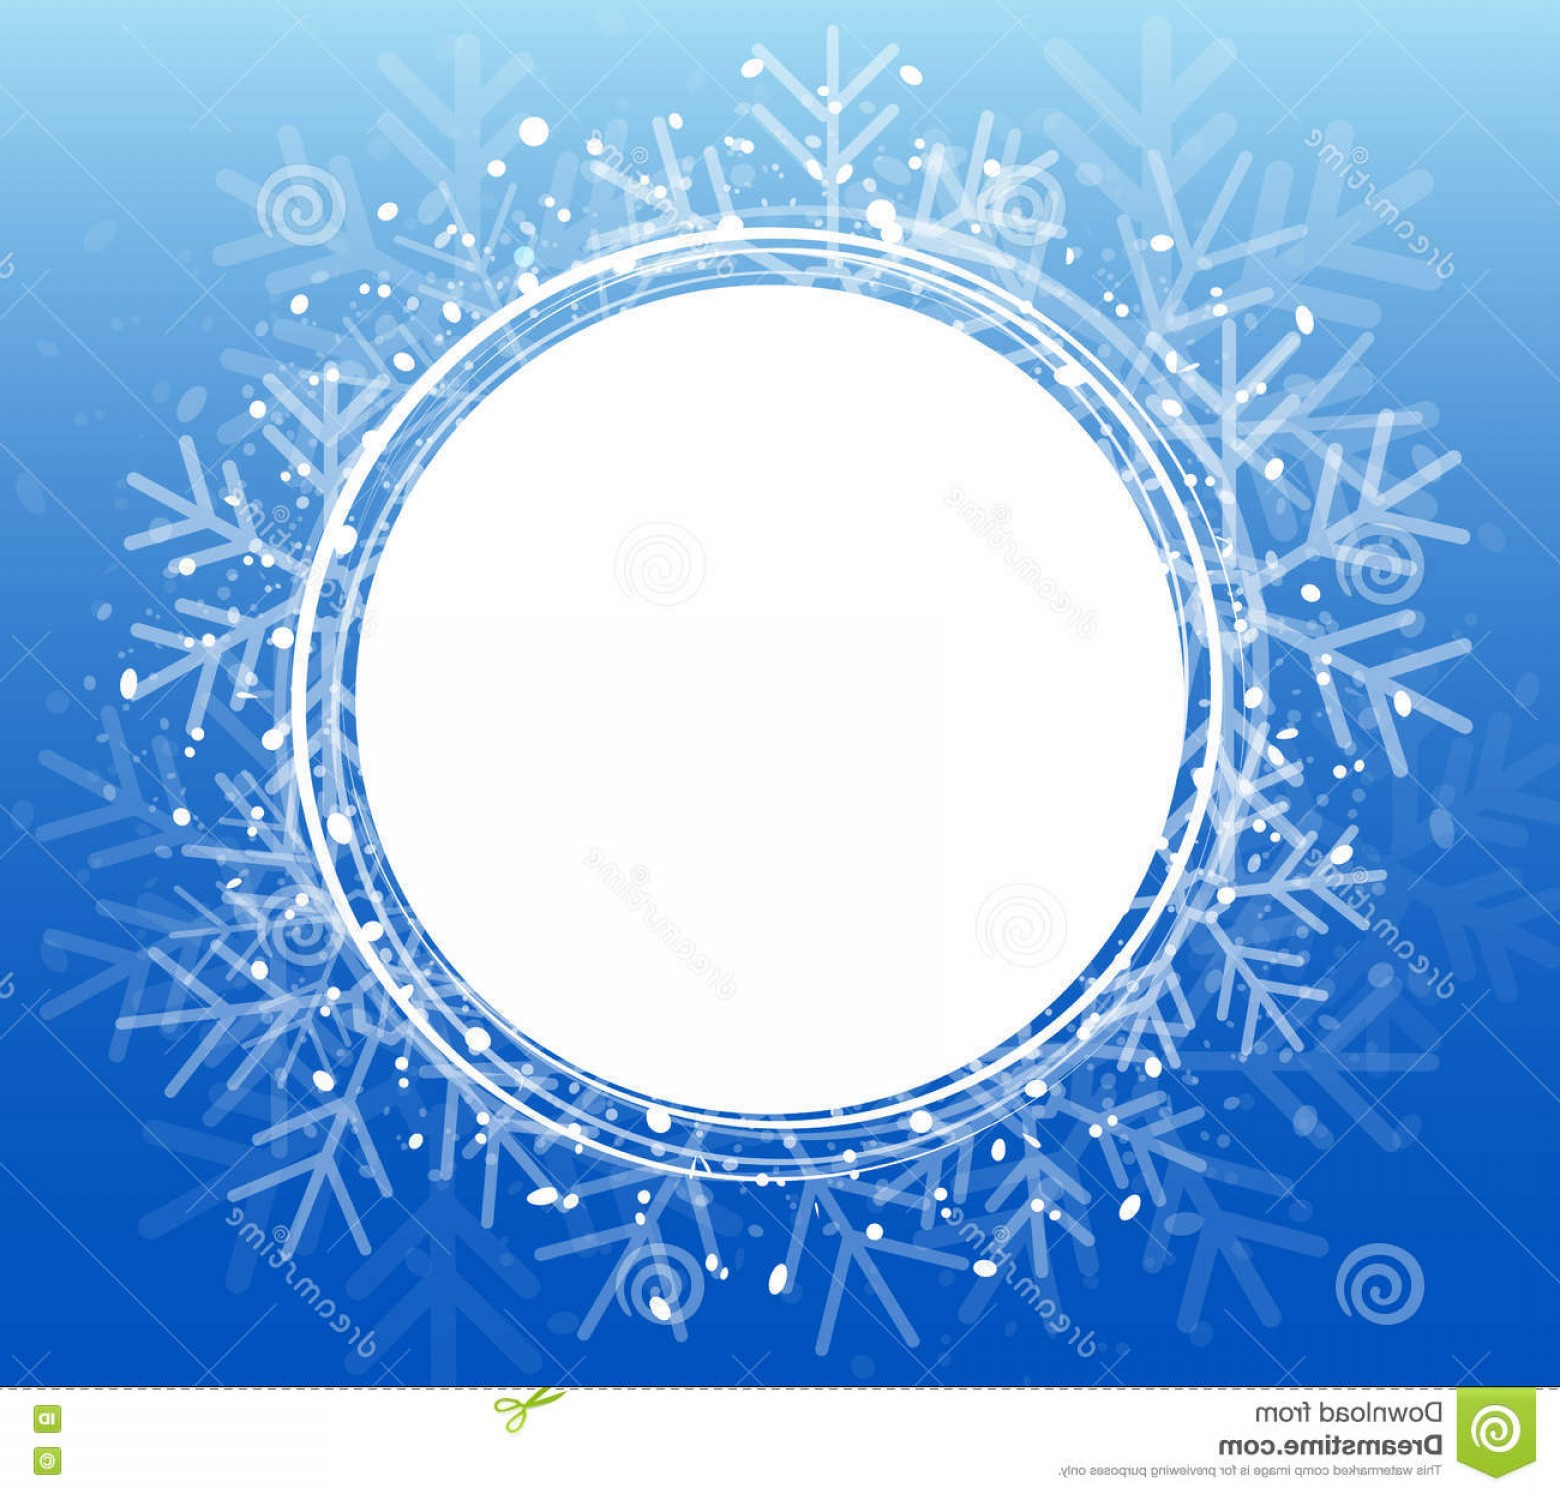 Vector Snowflake Wreath: Stock Illustration Blue Christmas Snowflake Wreath Vector Illustration Eps Background Image